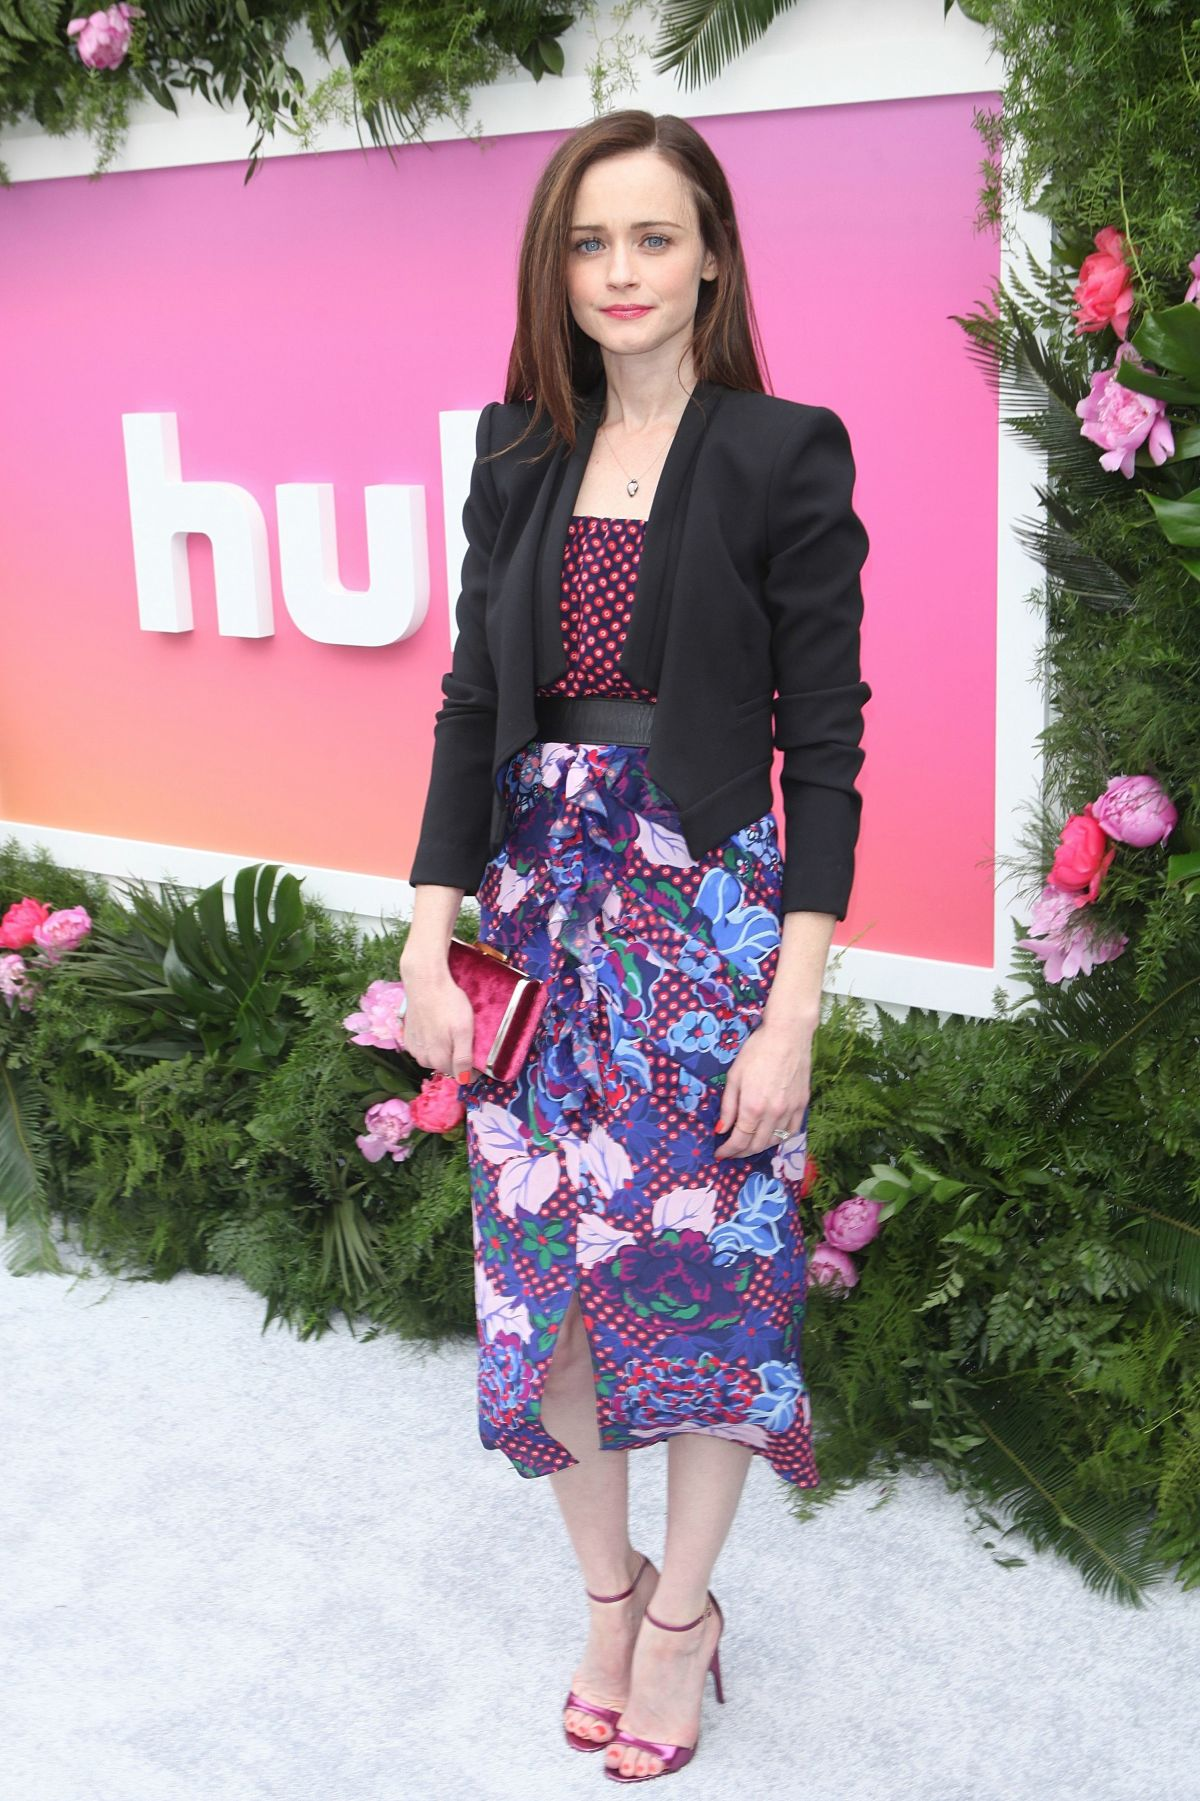 ALEXIS BLEDEL at Hulu Upfront in New York 05/03/2017 ...